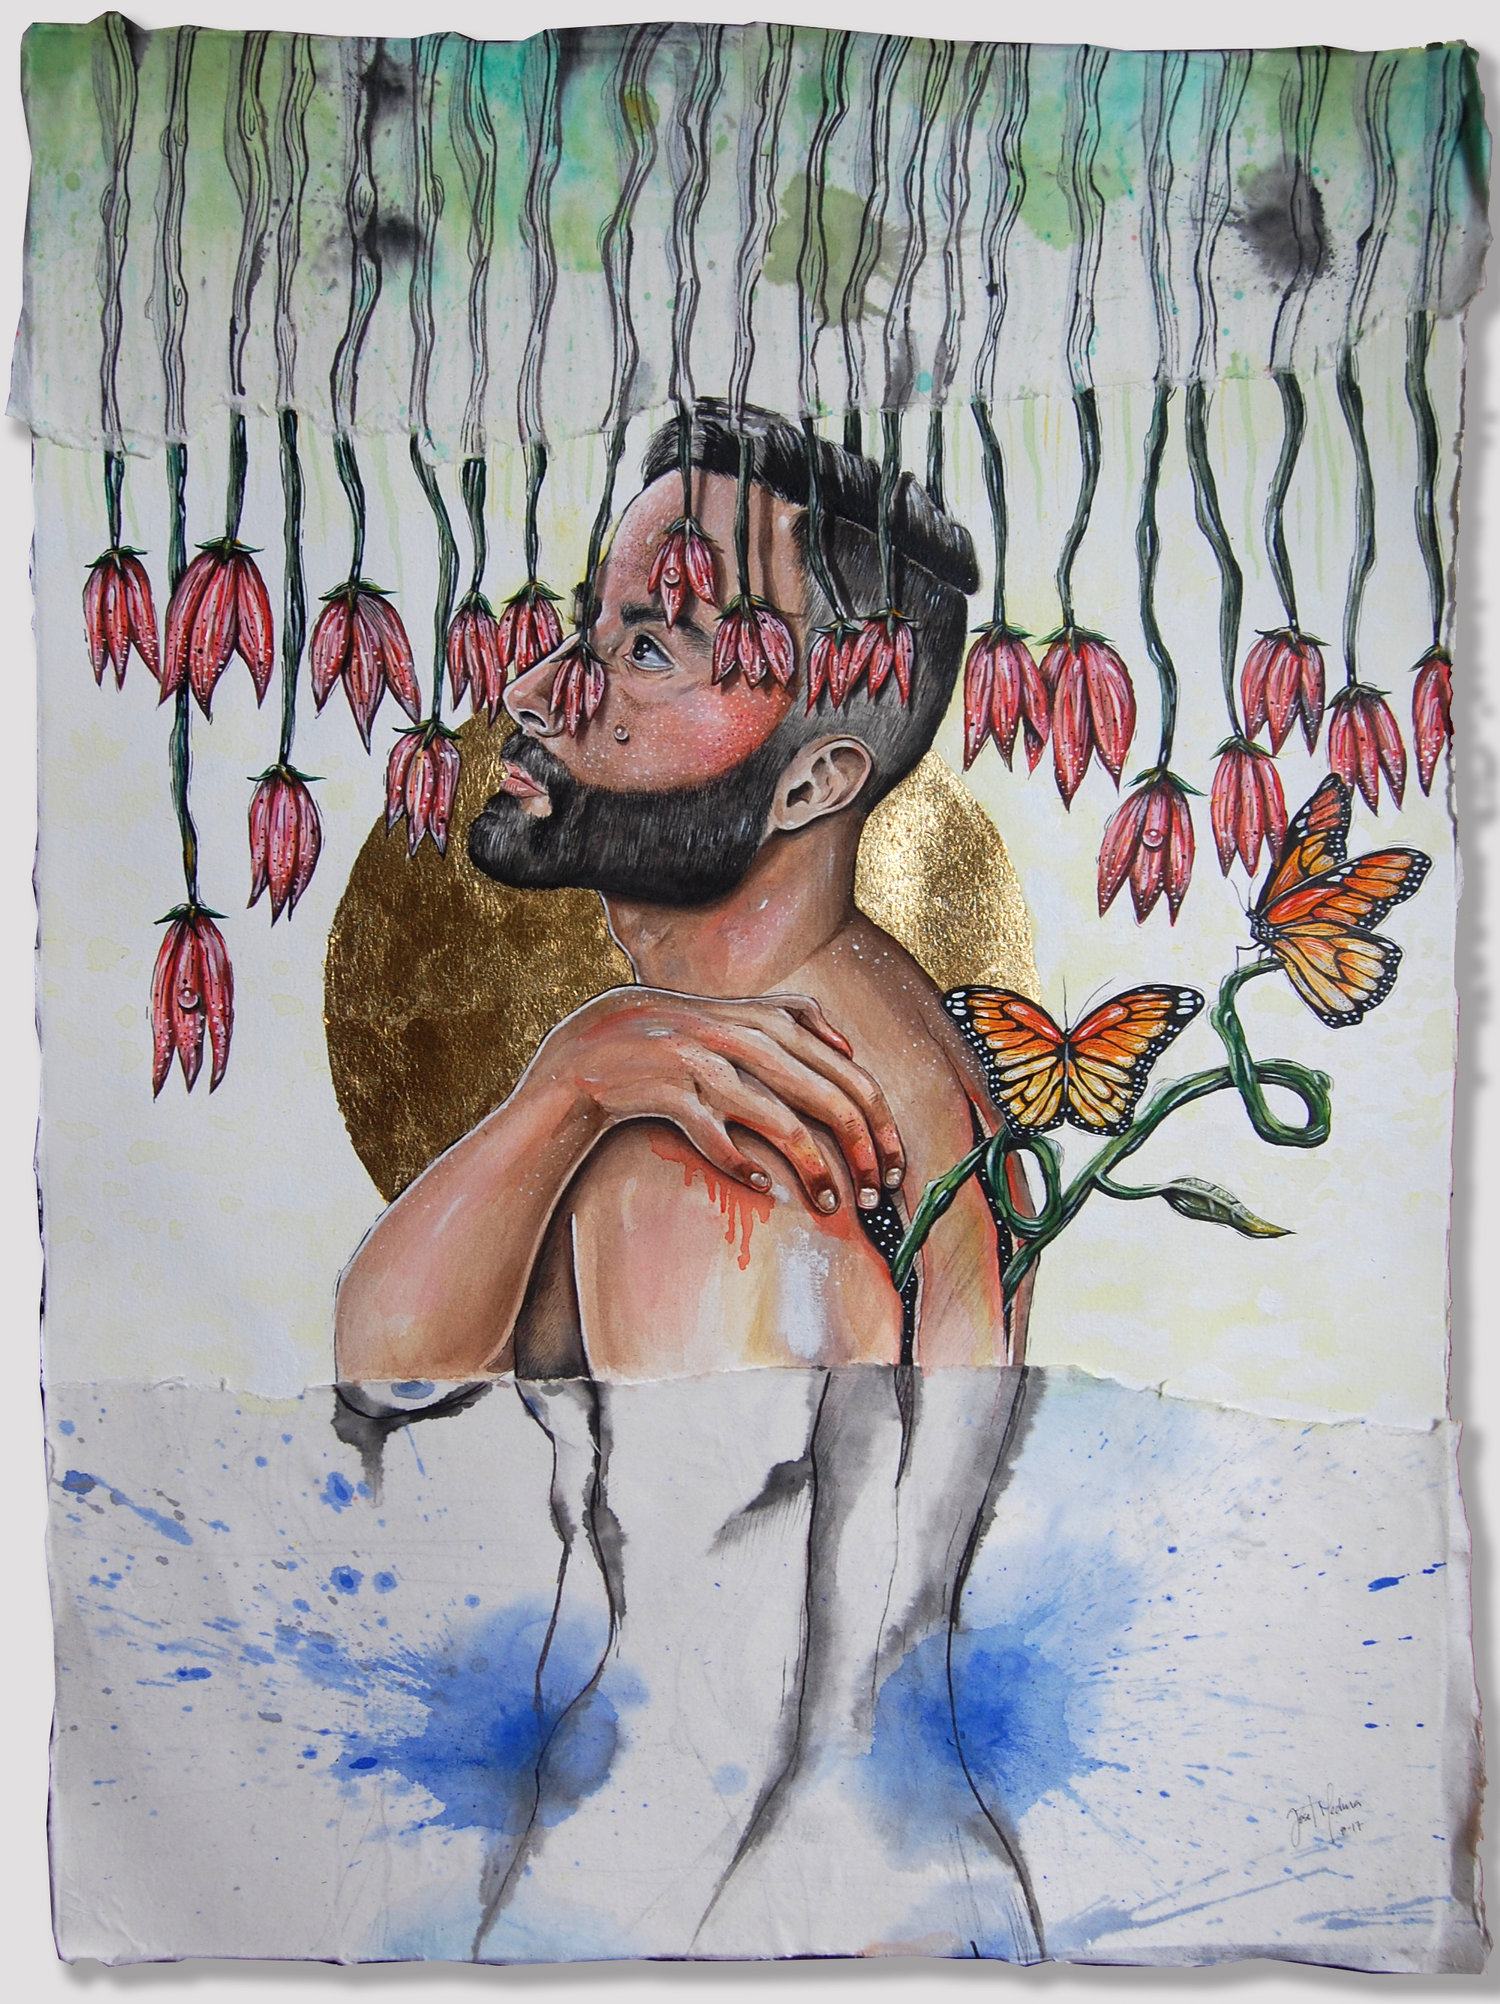 """Ripping Layers (2017)  Acrylic, watercolor, ink and gold leaf on paper  30 x 22 inches   """"The piece juxtaposing ripped pieces of paper to represent the metaphorical analogies of my own personal growth and ability to look back and move change forward and appreciate the beauty of it all. The deliberate use of monarch butterflies reflected the long journey as well as the physical and mental metamorphosis I experienced in my life."""""""